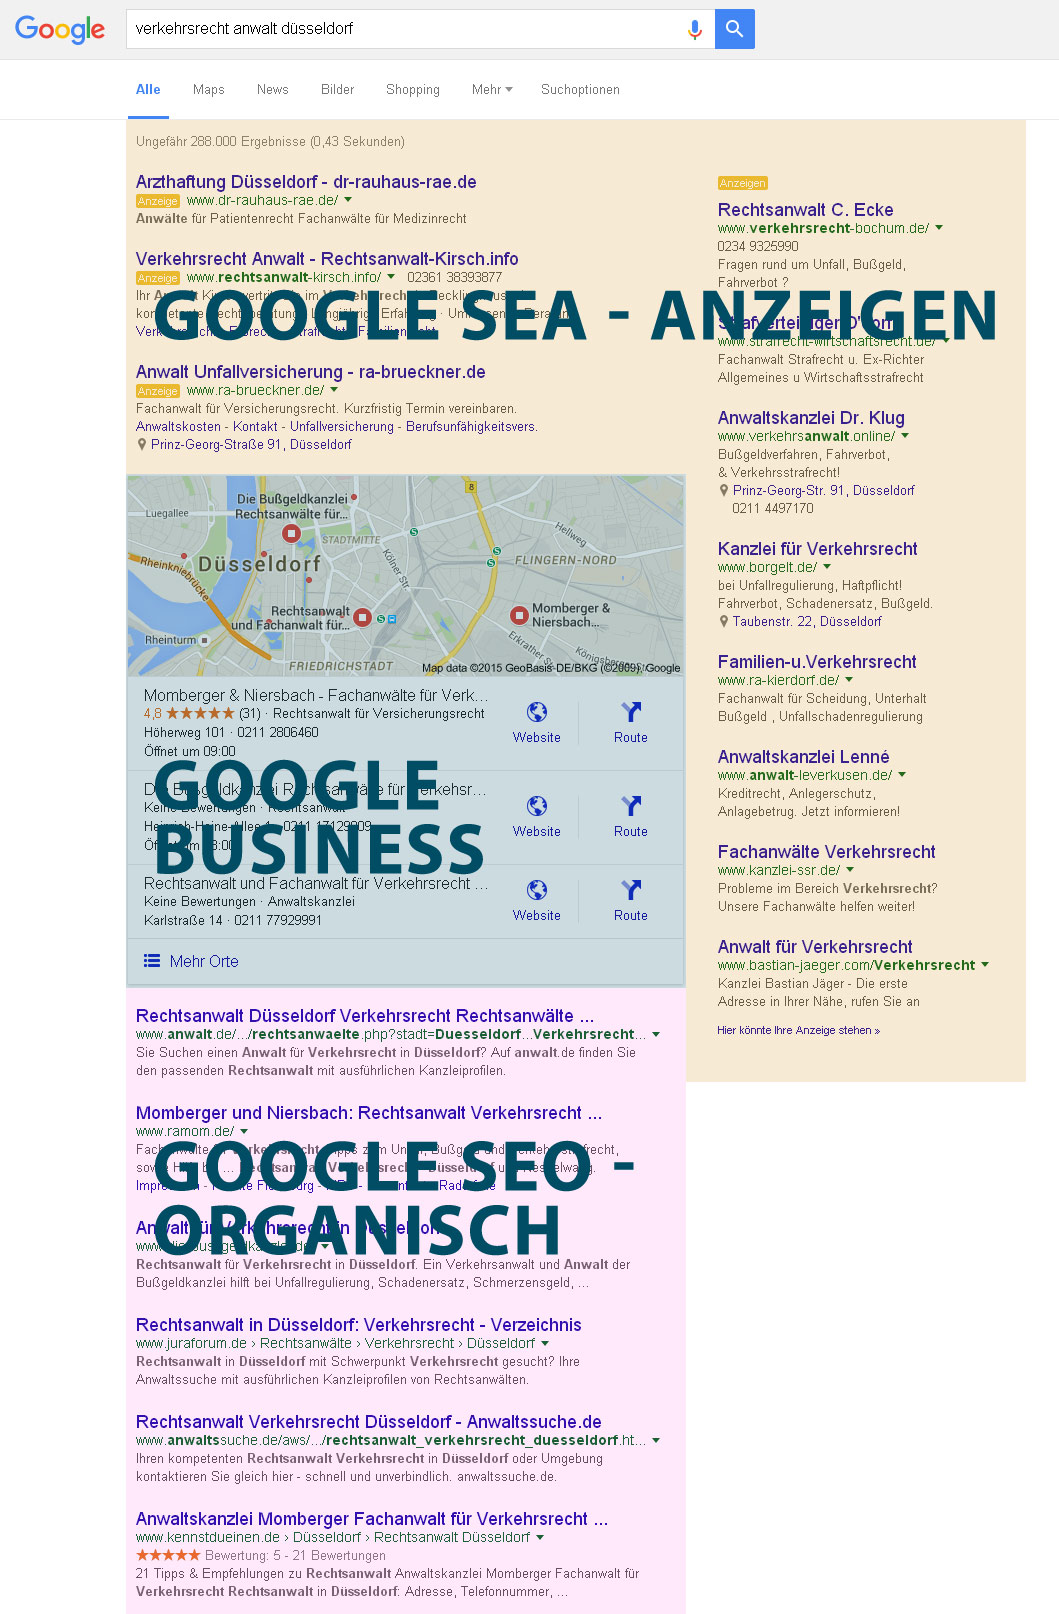 Google SEO SEA Bochum